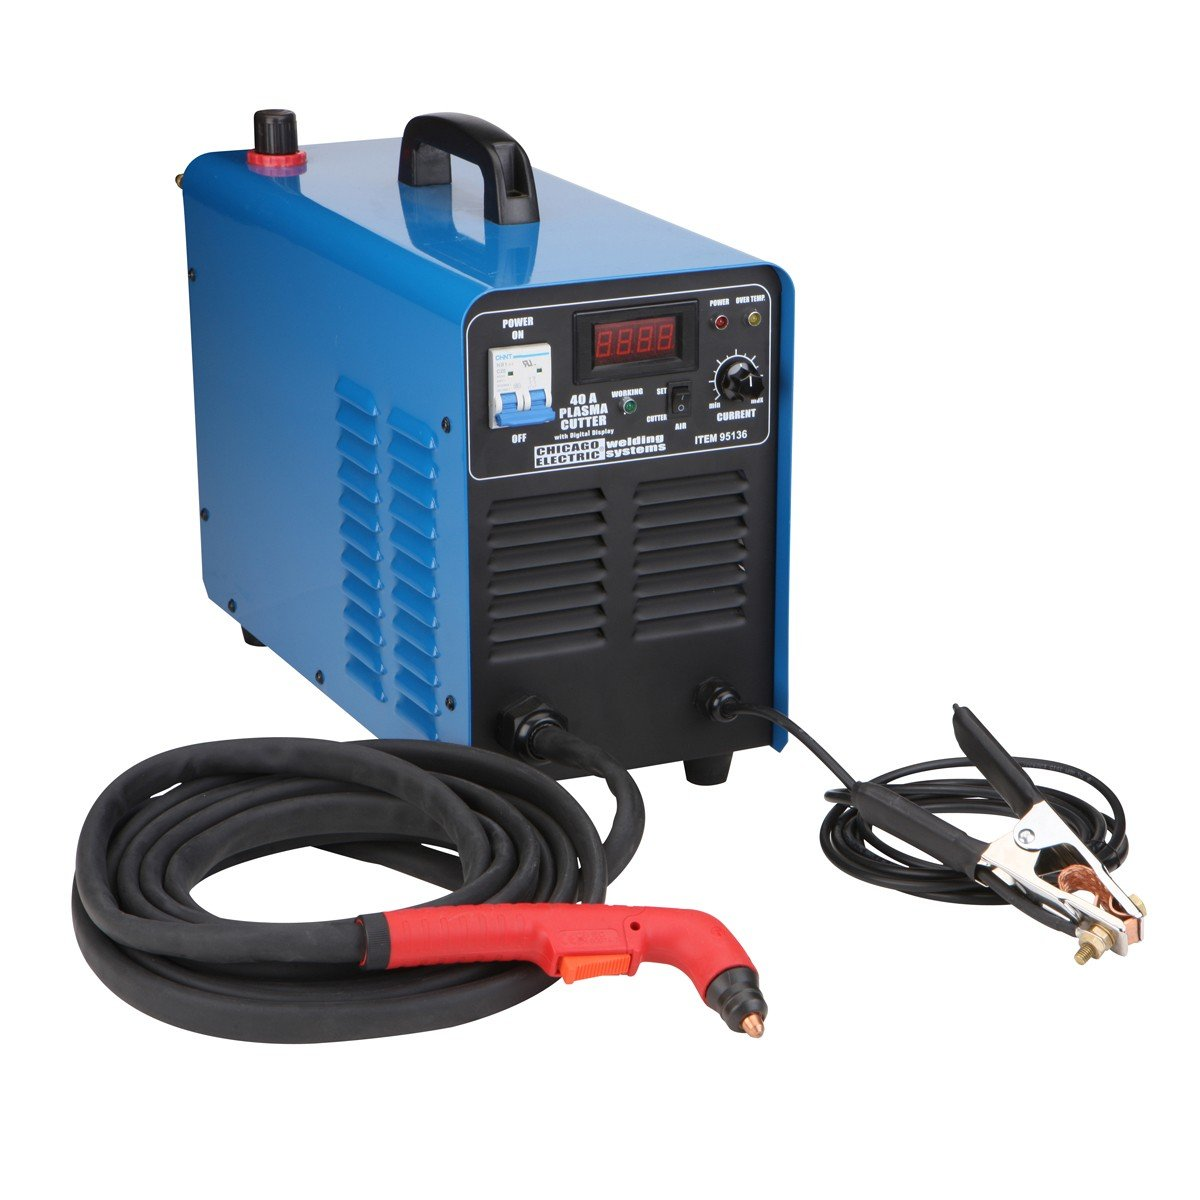 240 Volt Inverter Air Plasma Cutter with Digital Display